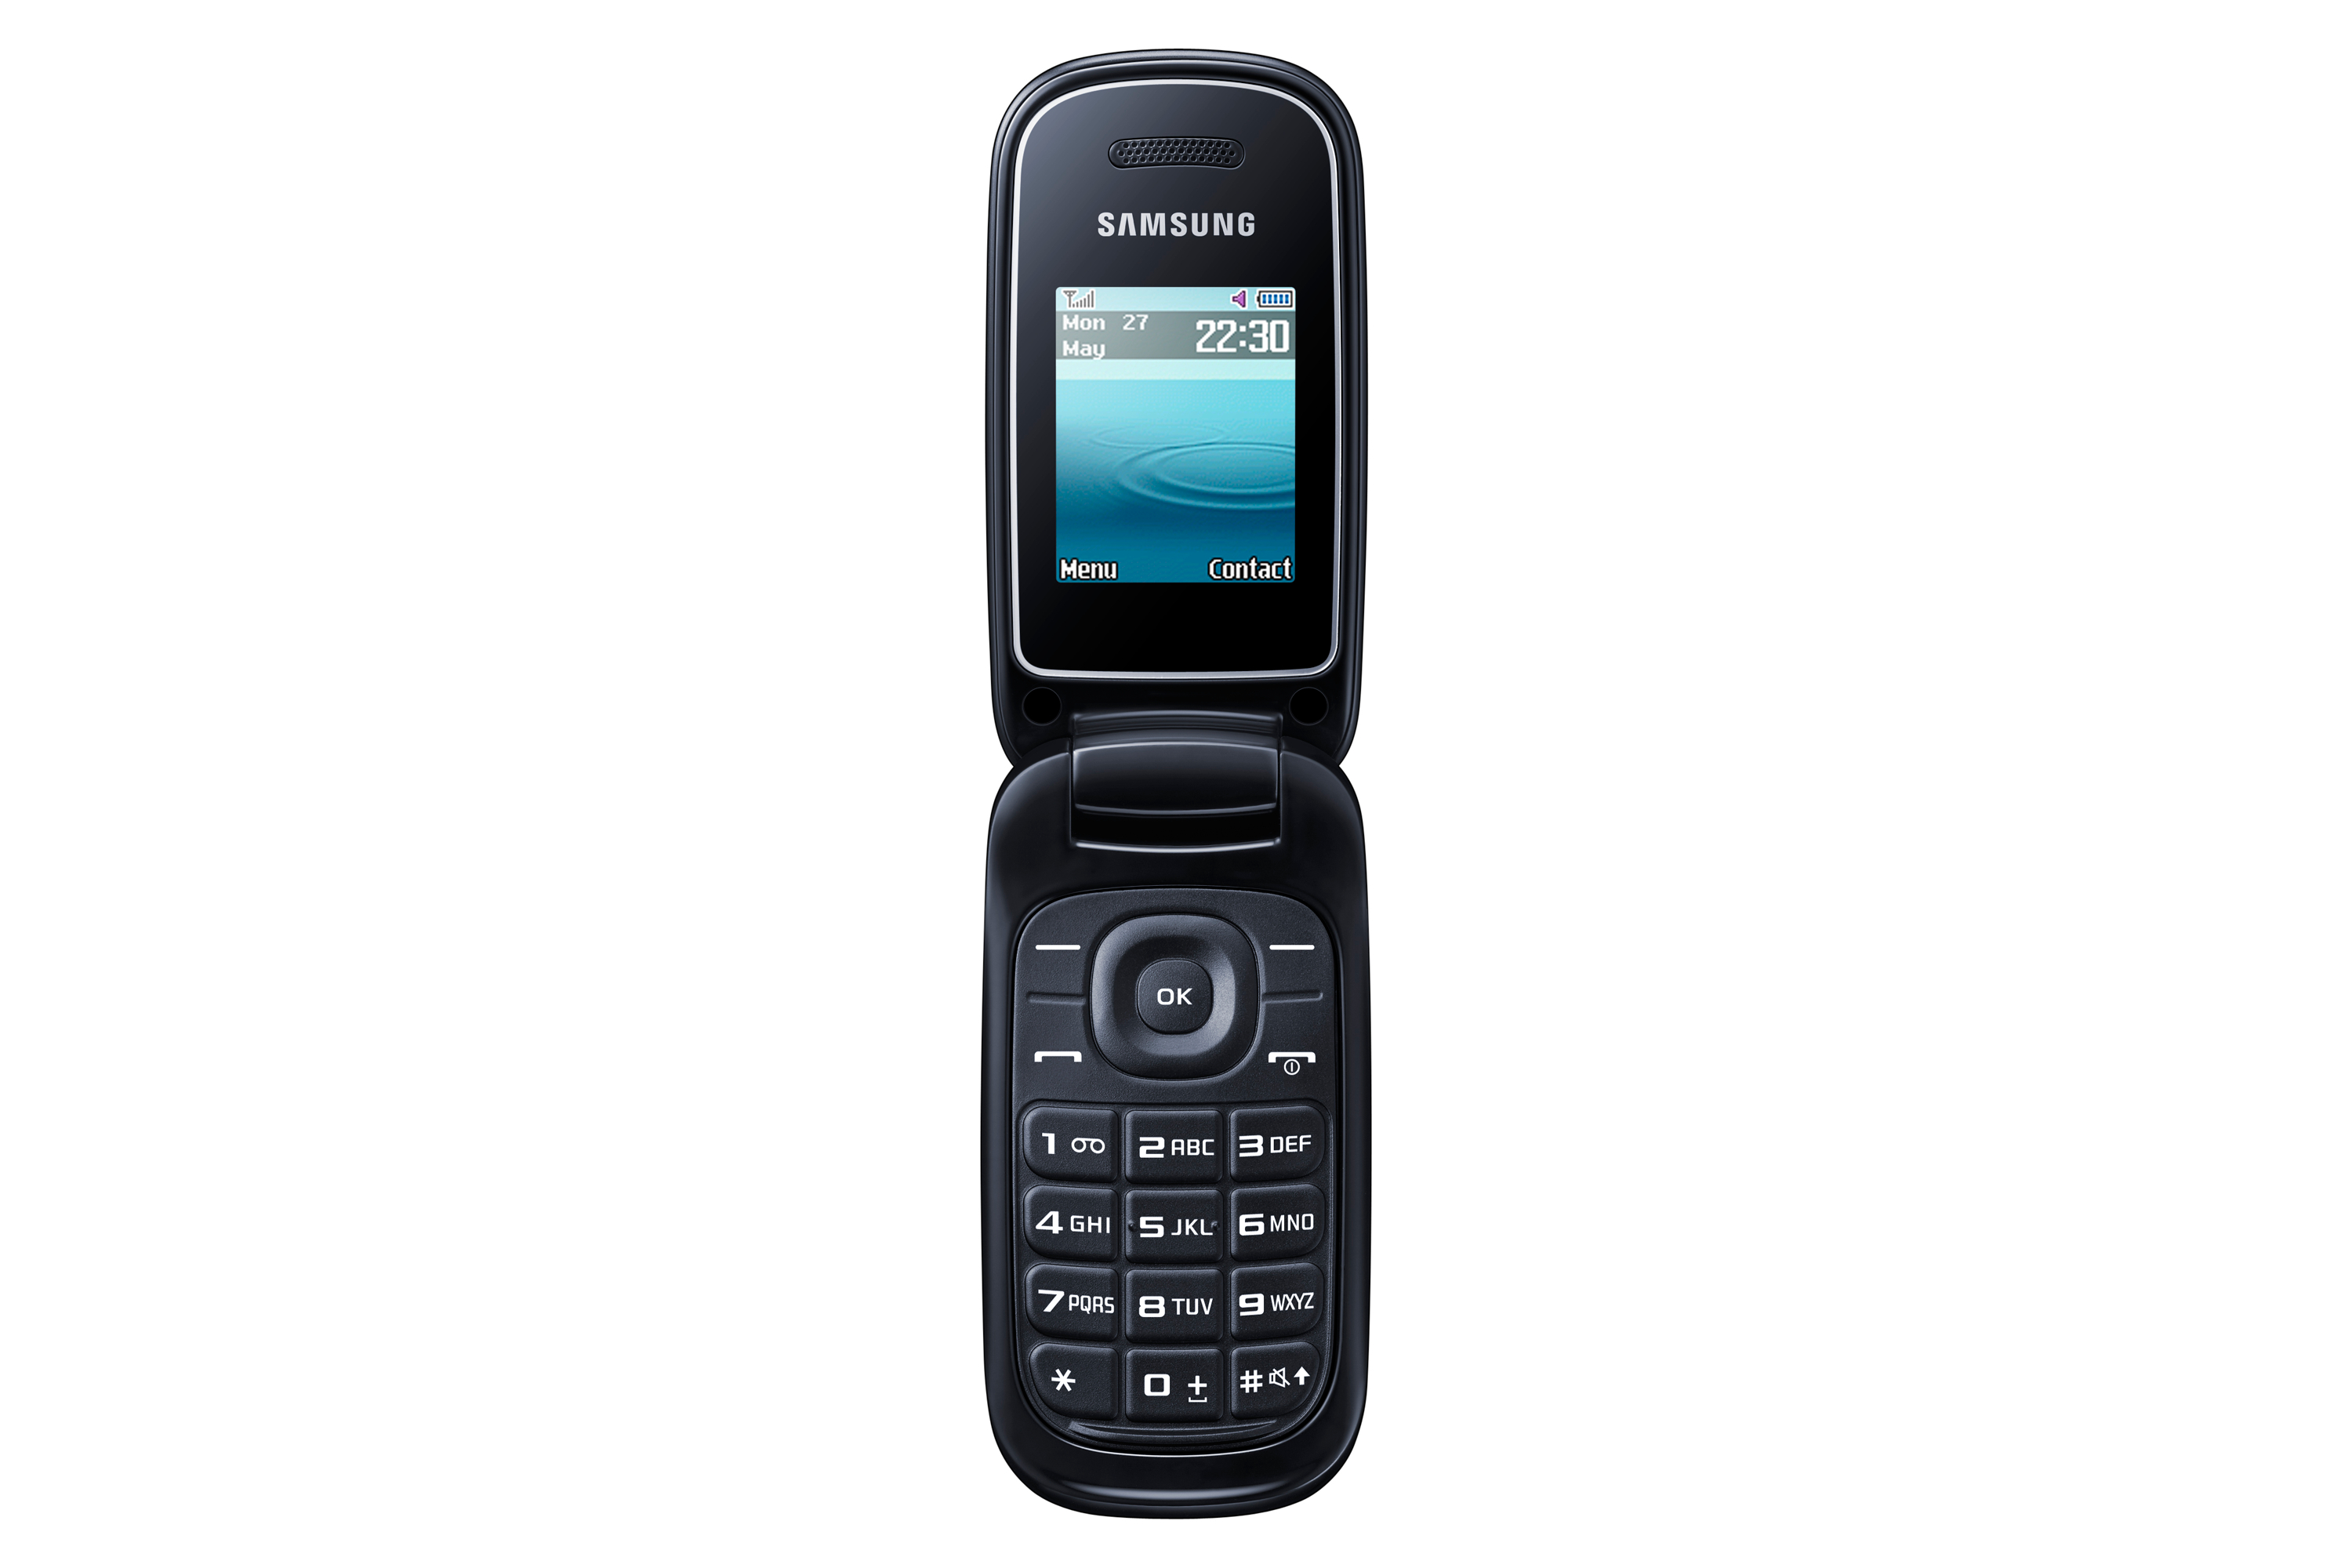 samsung e1270 black flip mobile phone locked to virgin ebay. Black Bedroom Furniture Sets. Home Design Ideas